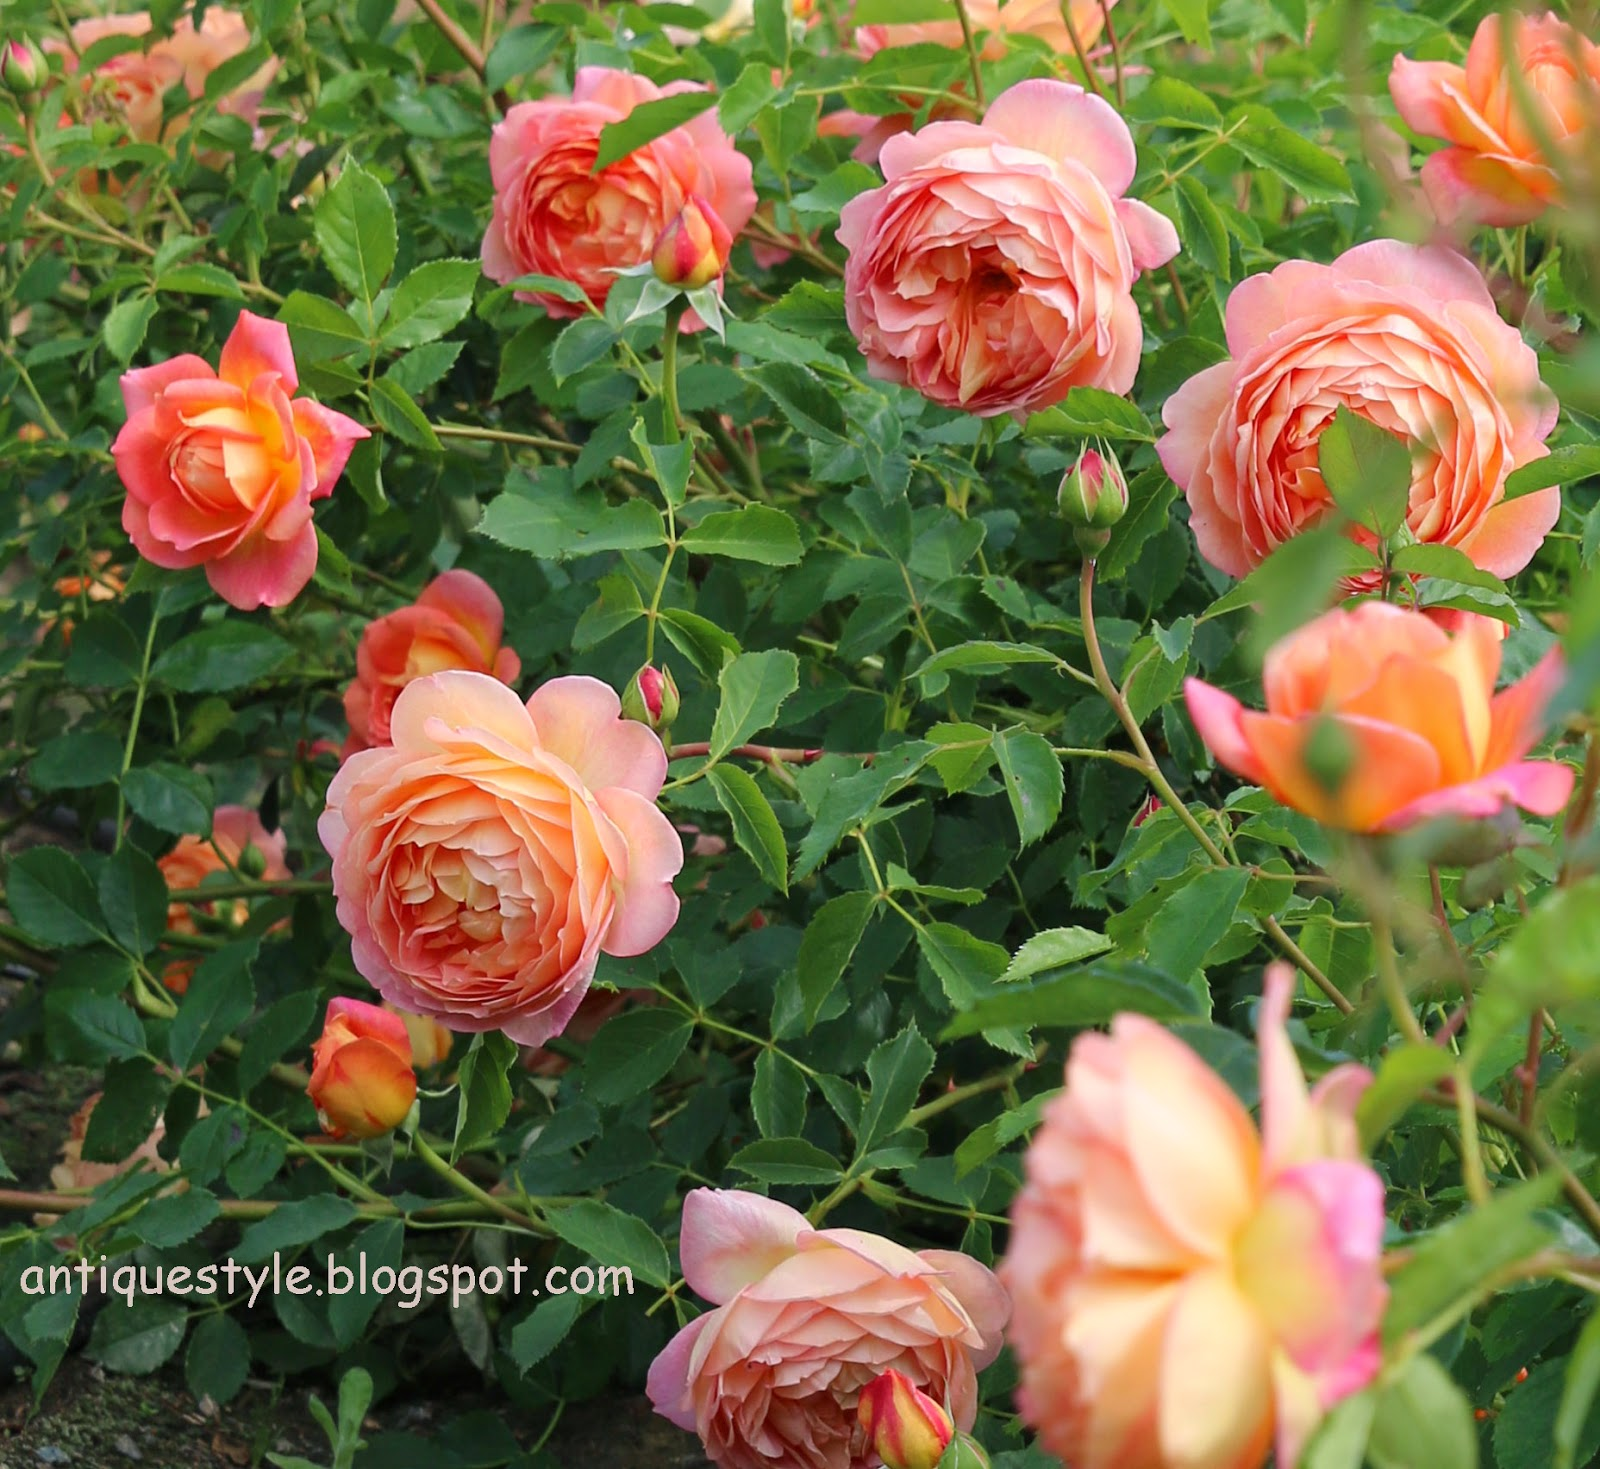 lady of shalott rose - photo #5